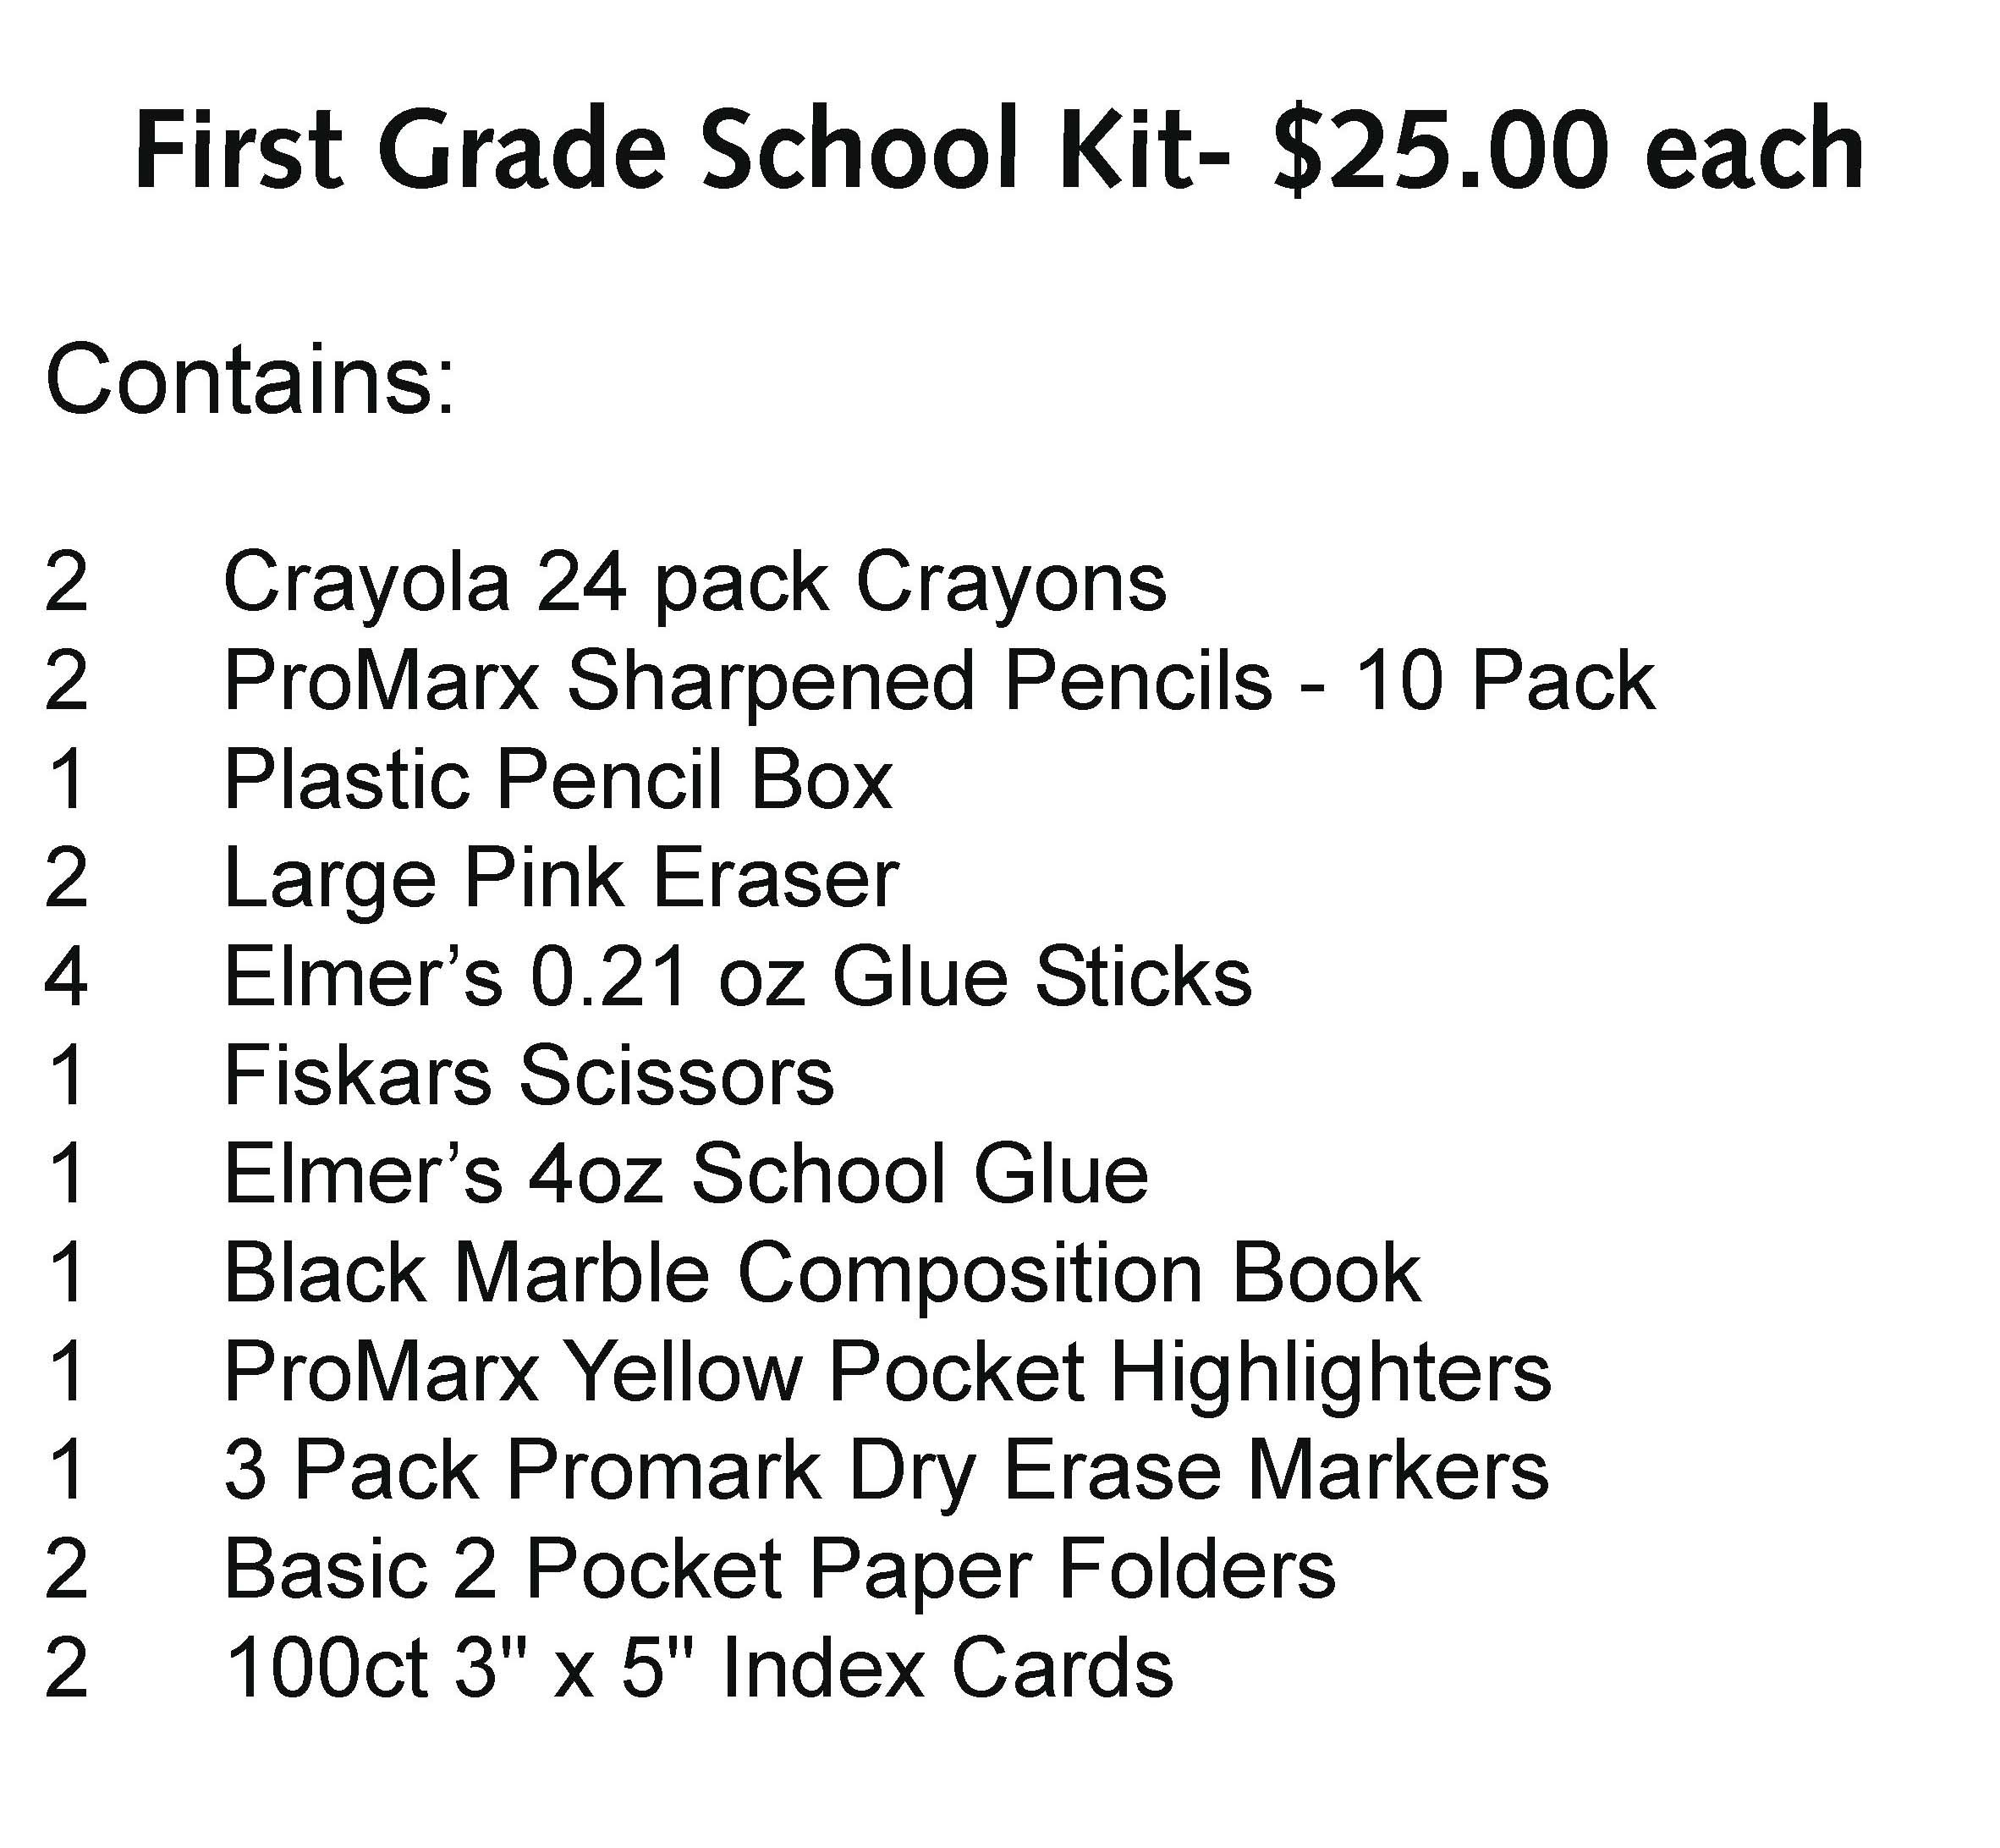 General Herkimer 1st Grade Kit